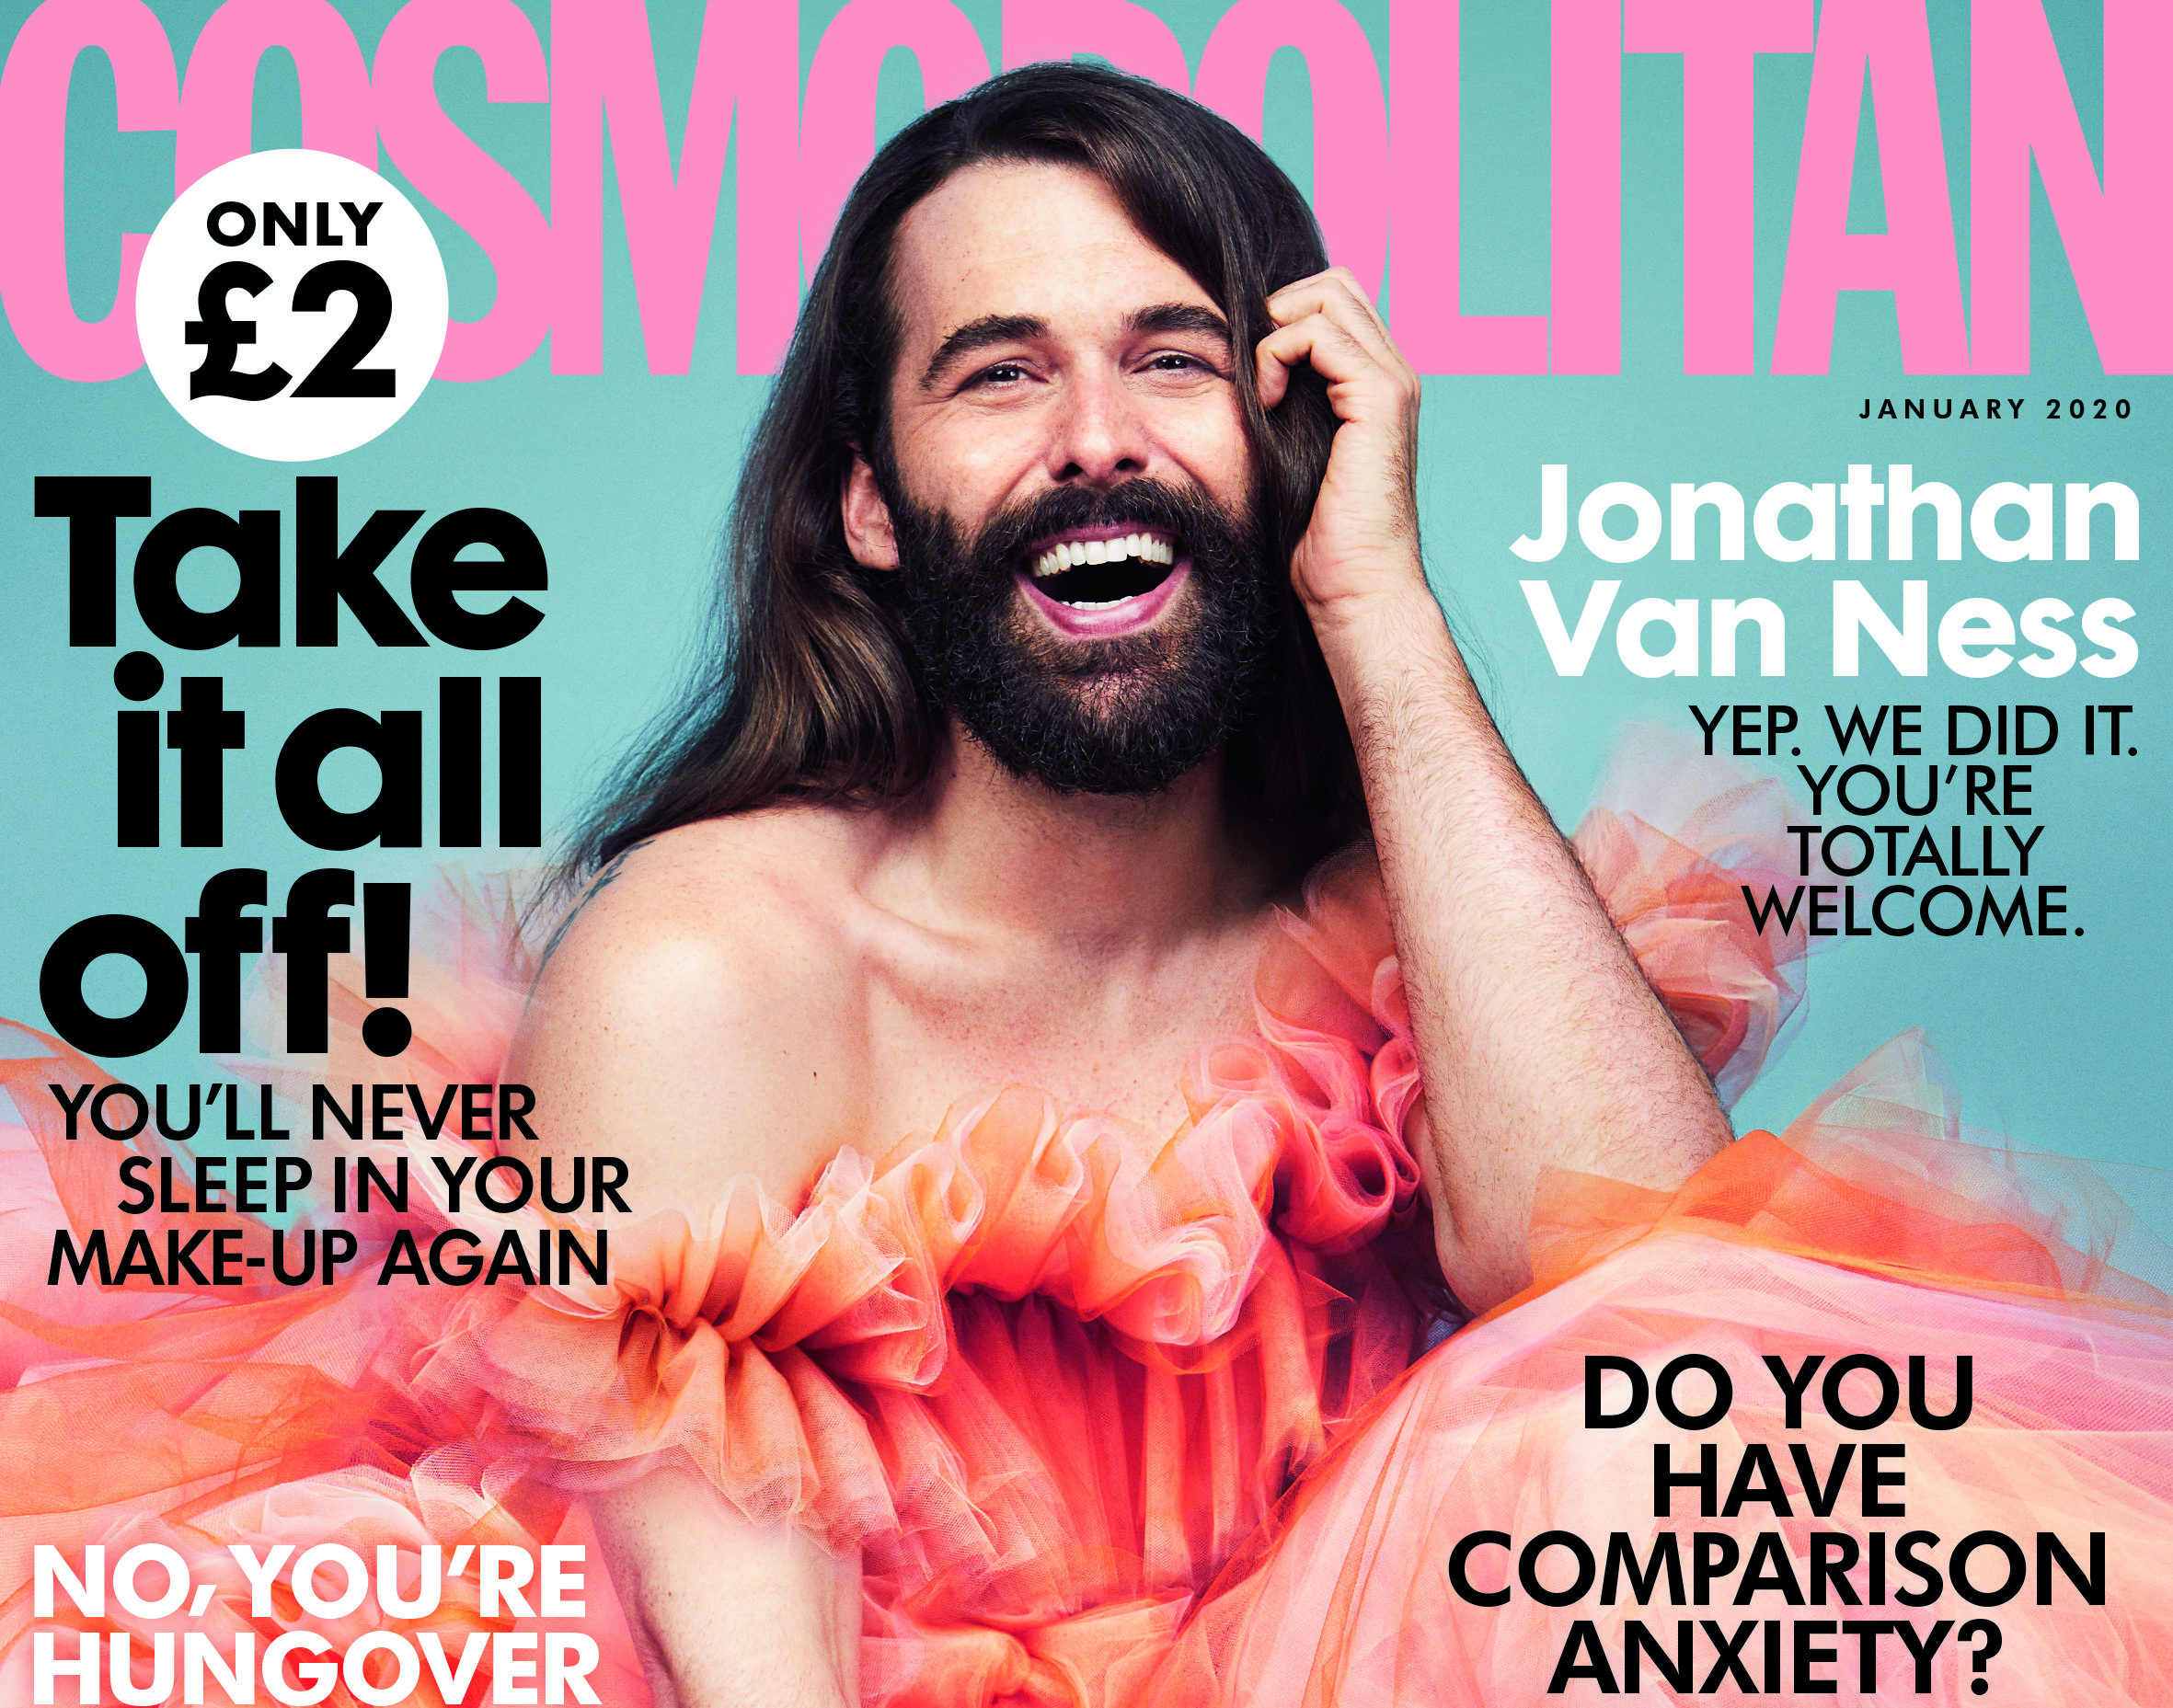 Jonathan Van Ness on the cover of the January 2020 issue of Cosmopolitan UK